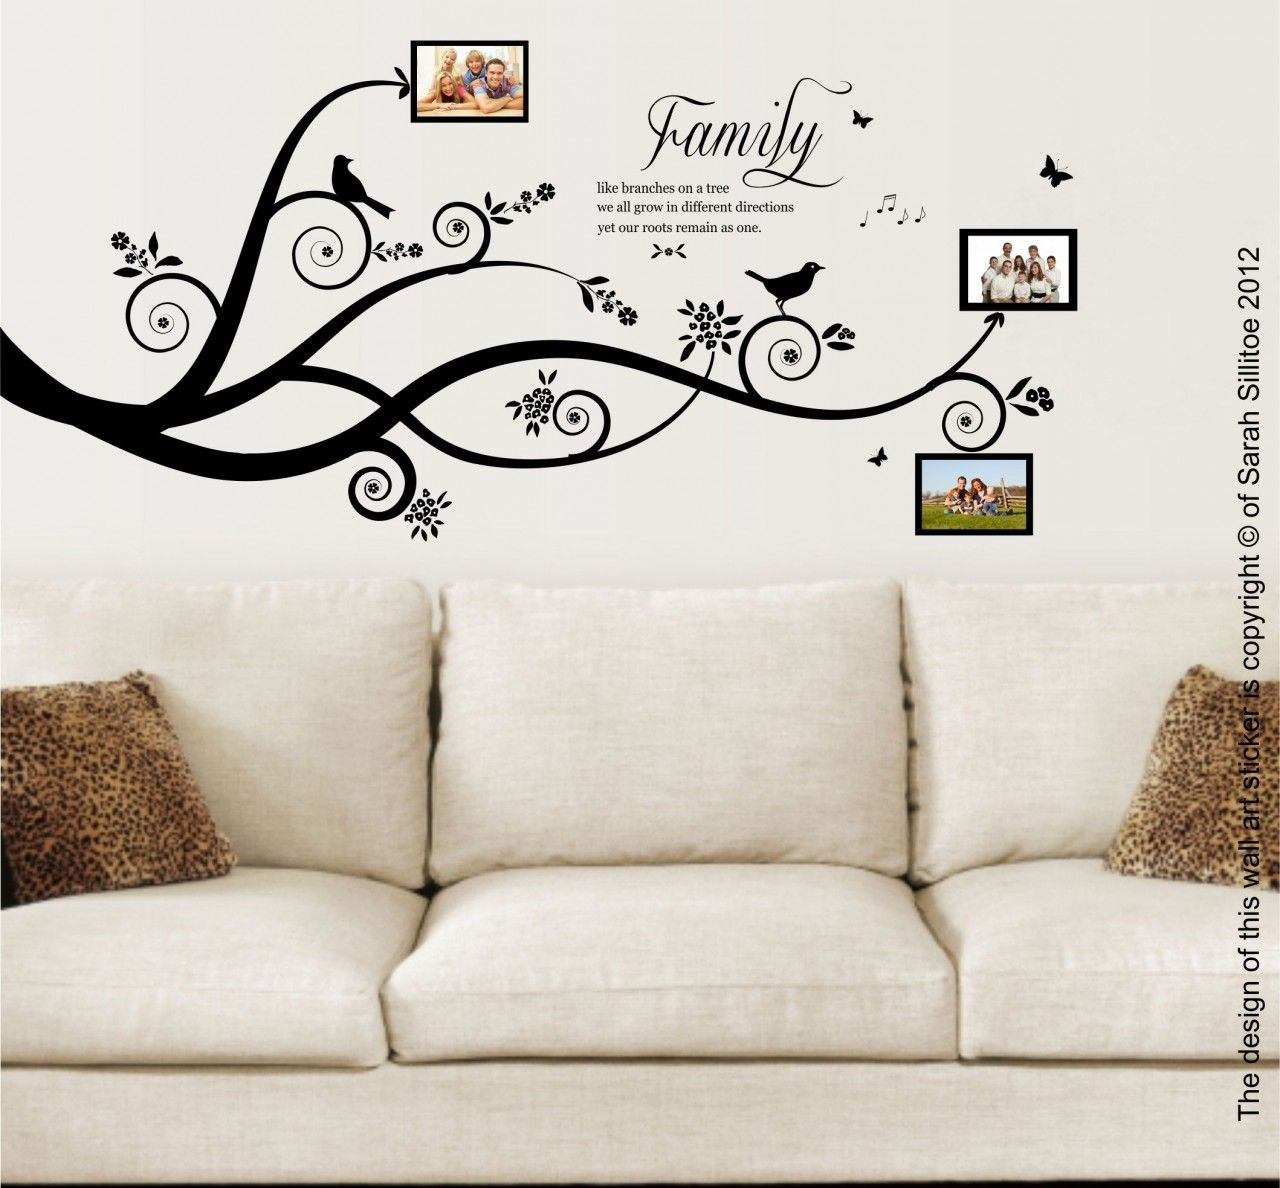 Family Tree Mural Decal | Buy Family Tree Vinyl Wall Art Sticker Decal  Mural   Fabulous Stickers